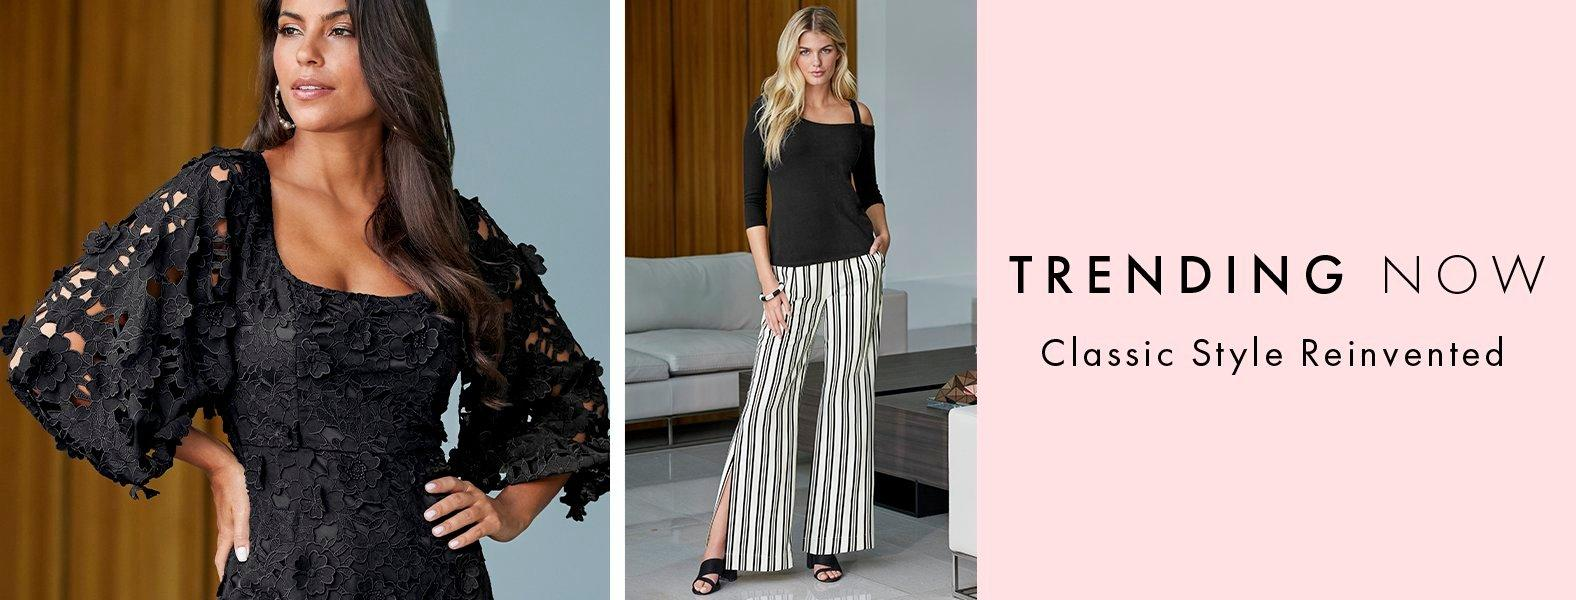 left model wearing a black lace puff-sleeve dress. right model wearing a black off-the-shoulder three-quarter sleeve top and black and white striped palazzo pants.